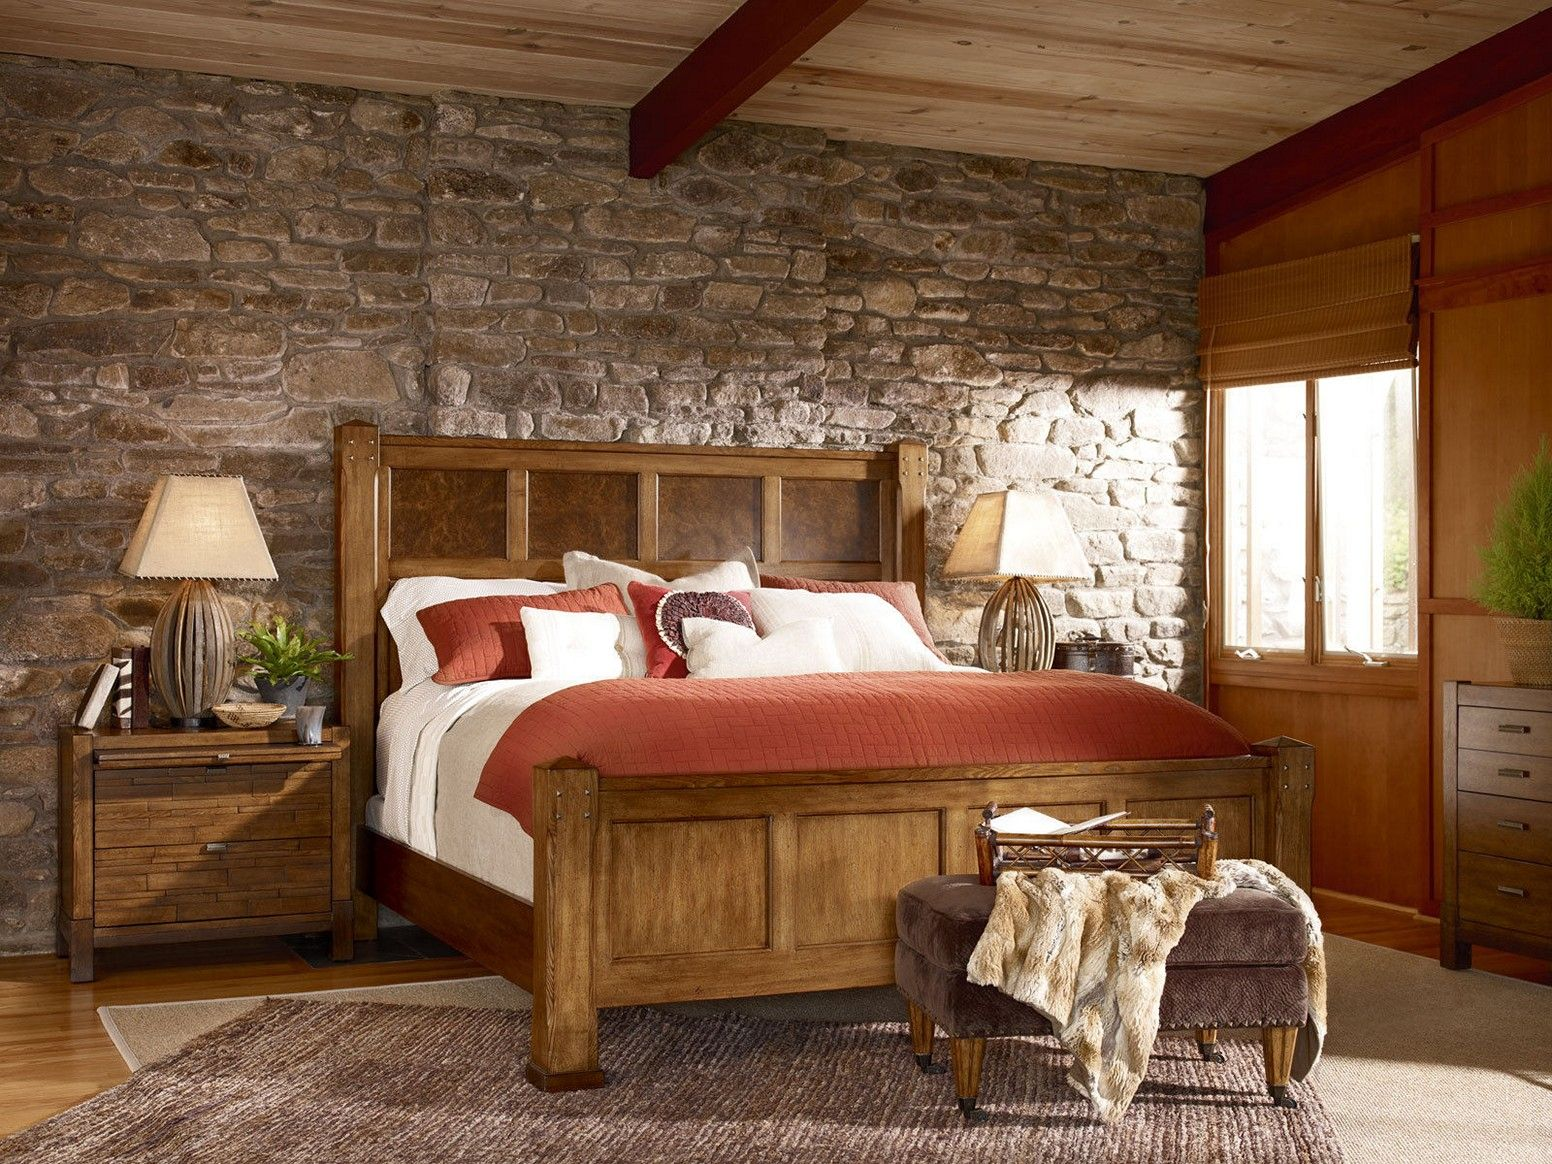 rustic country bedroom decorating ideas - Rustic Bedroom Decor Pinterest